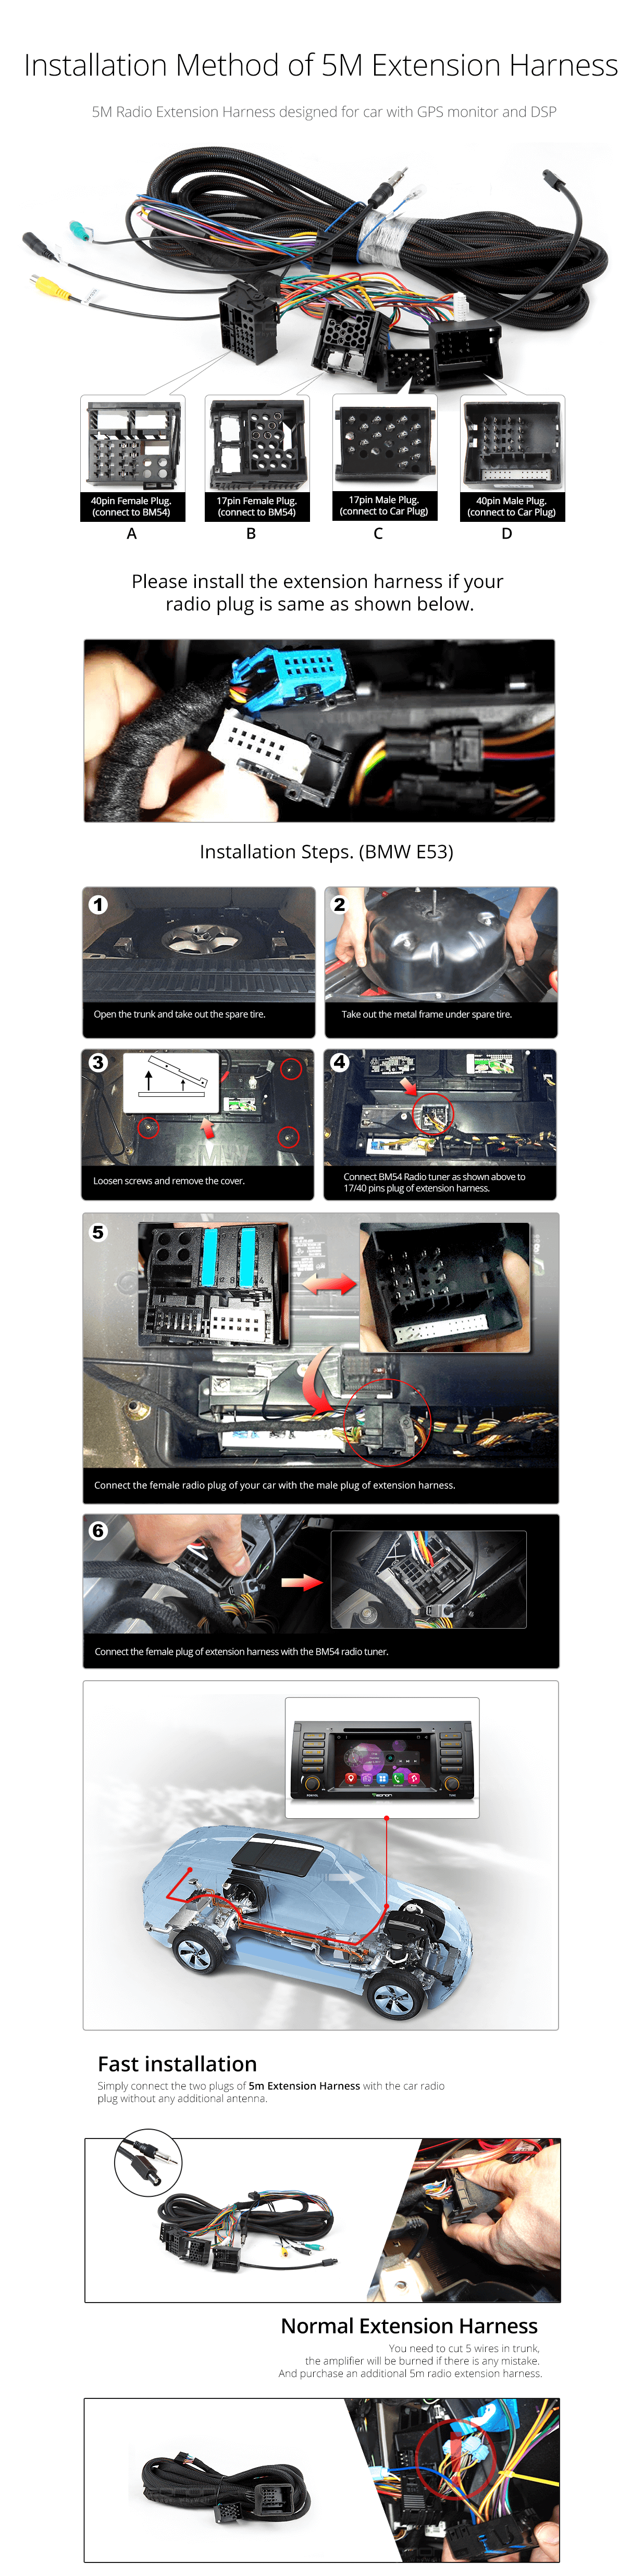 GA7166 last 1 ga7166 eonon car dvd eonon car stereo eonon car radio how to wire a car stereo without a harness at bayanpartner.co